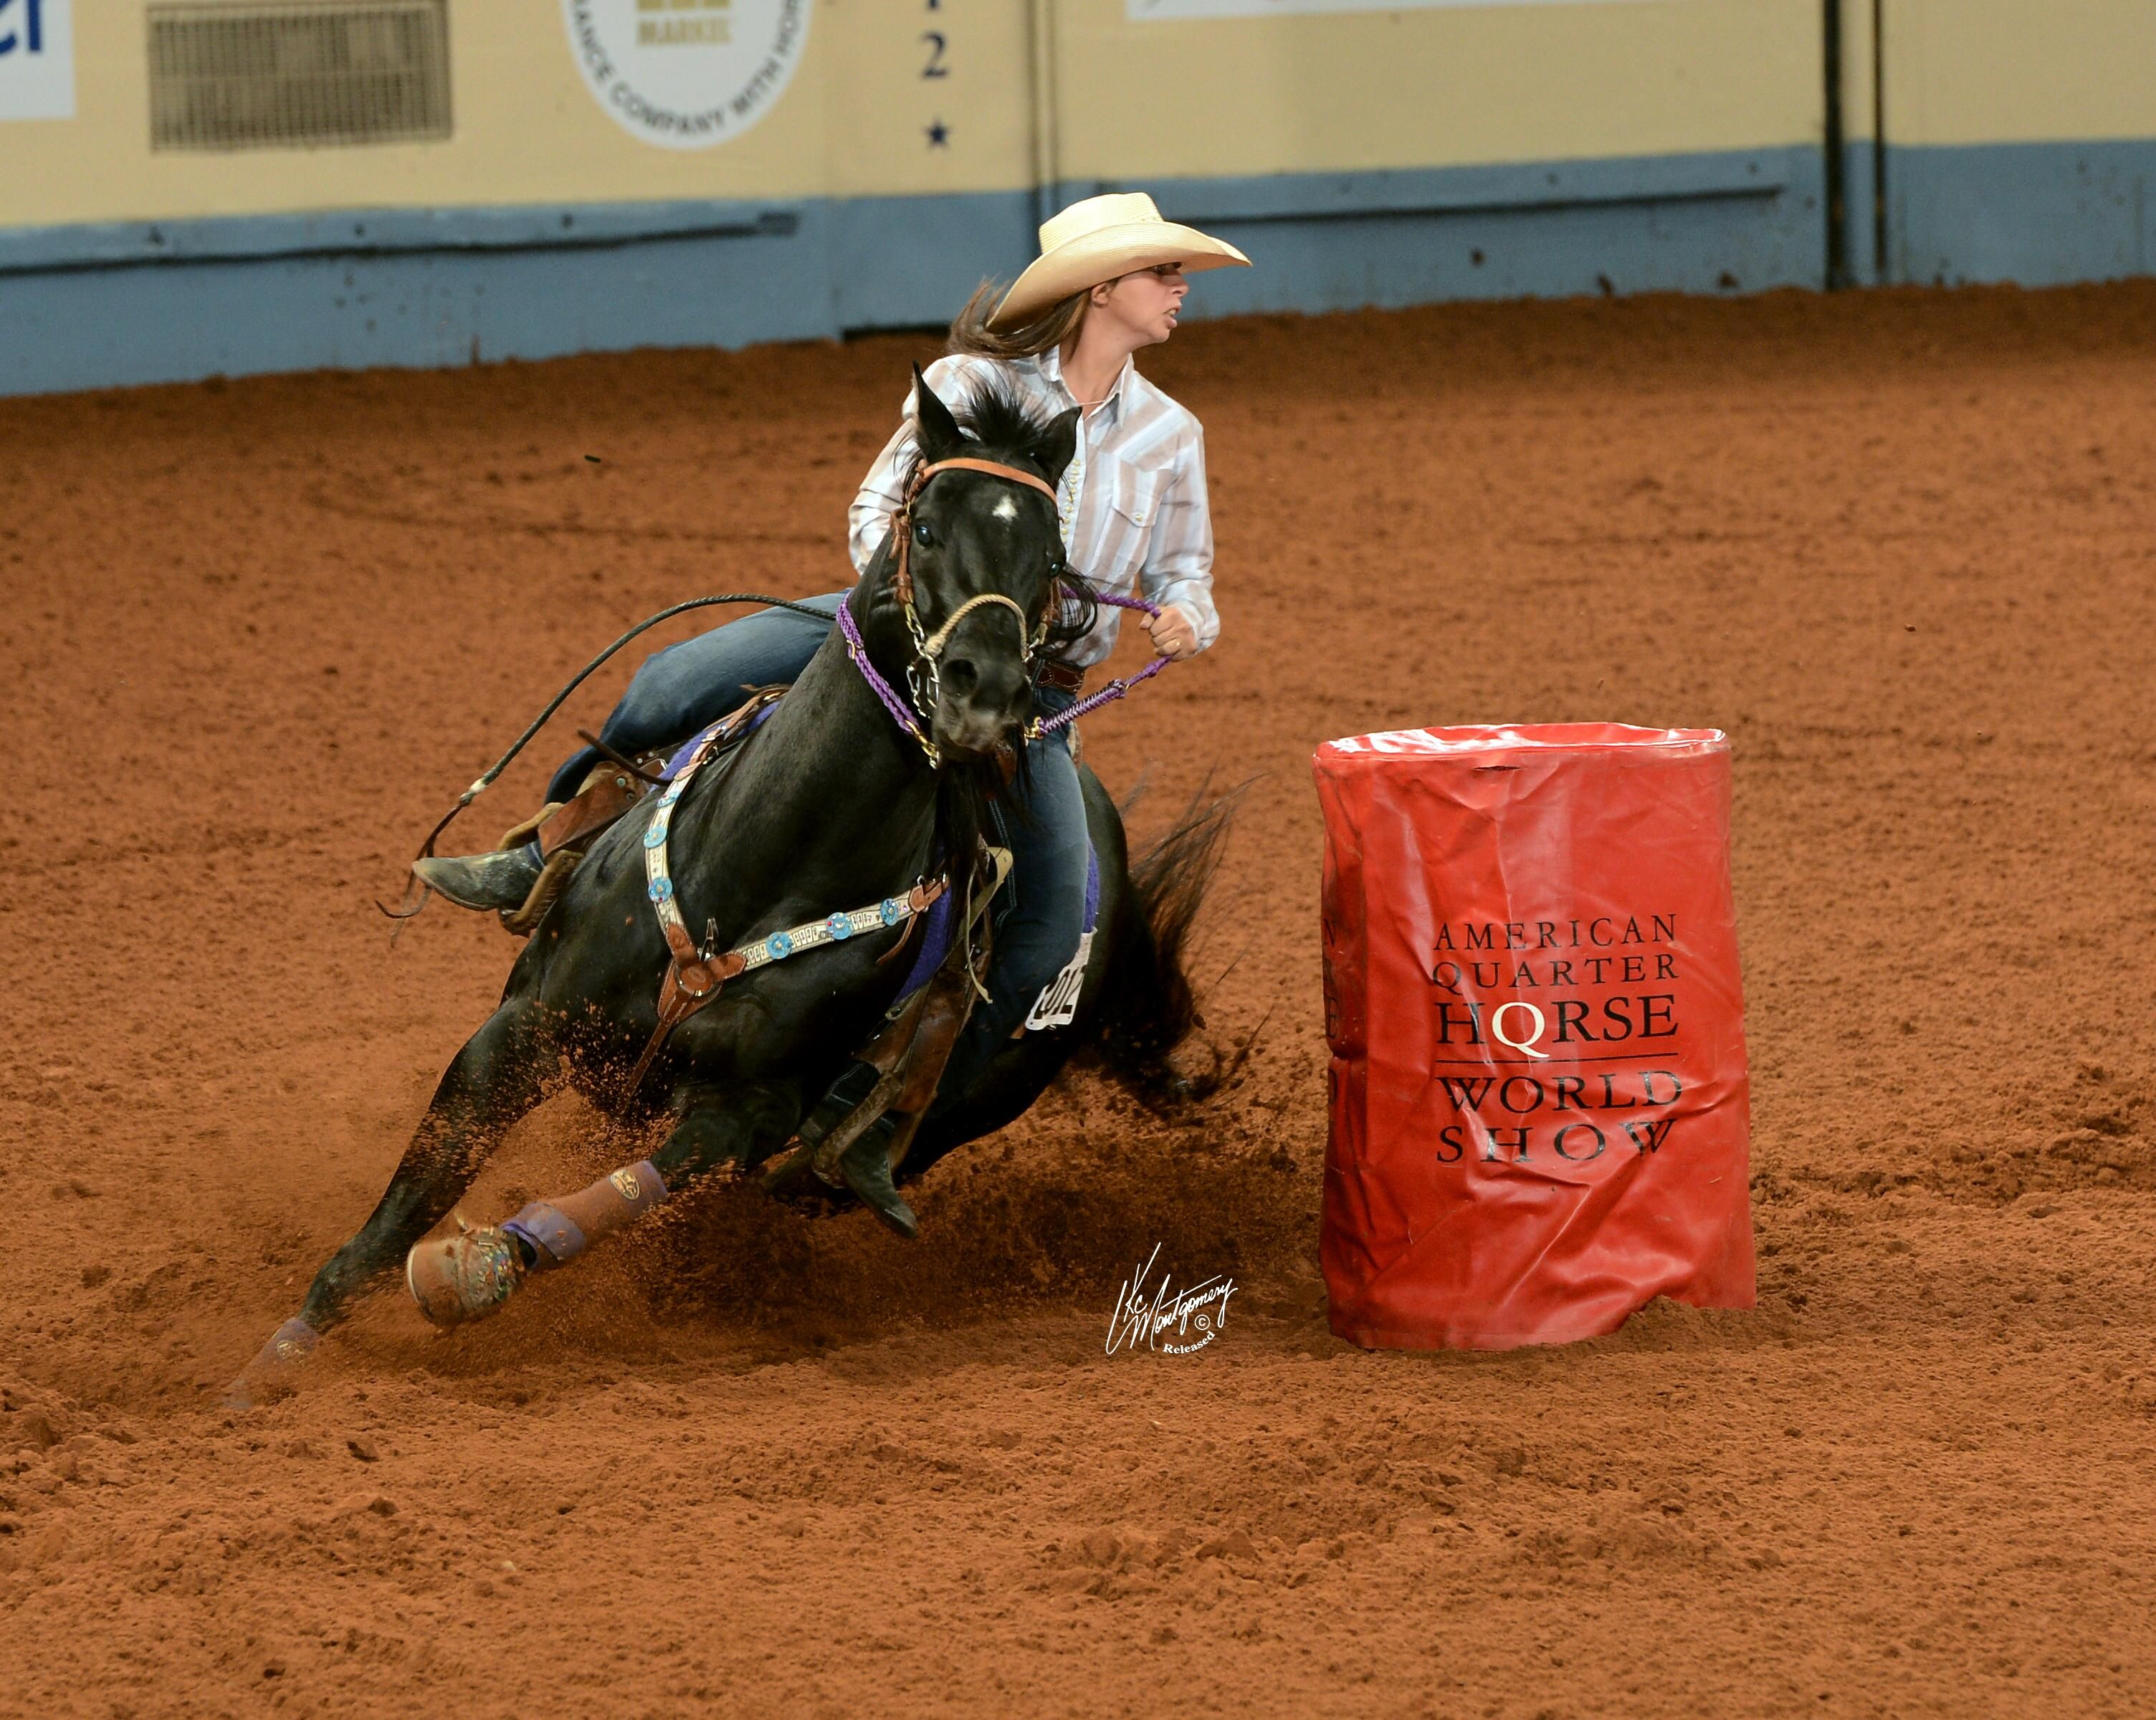 Black quarter horses barrel racing - photo#11